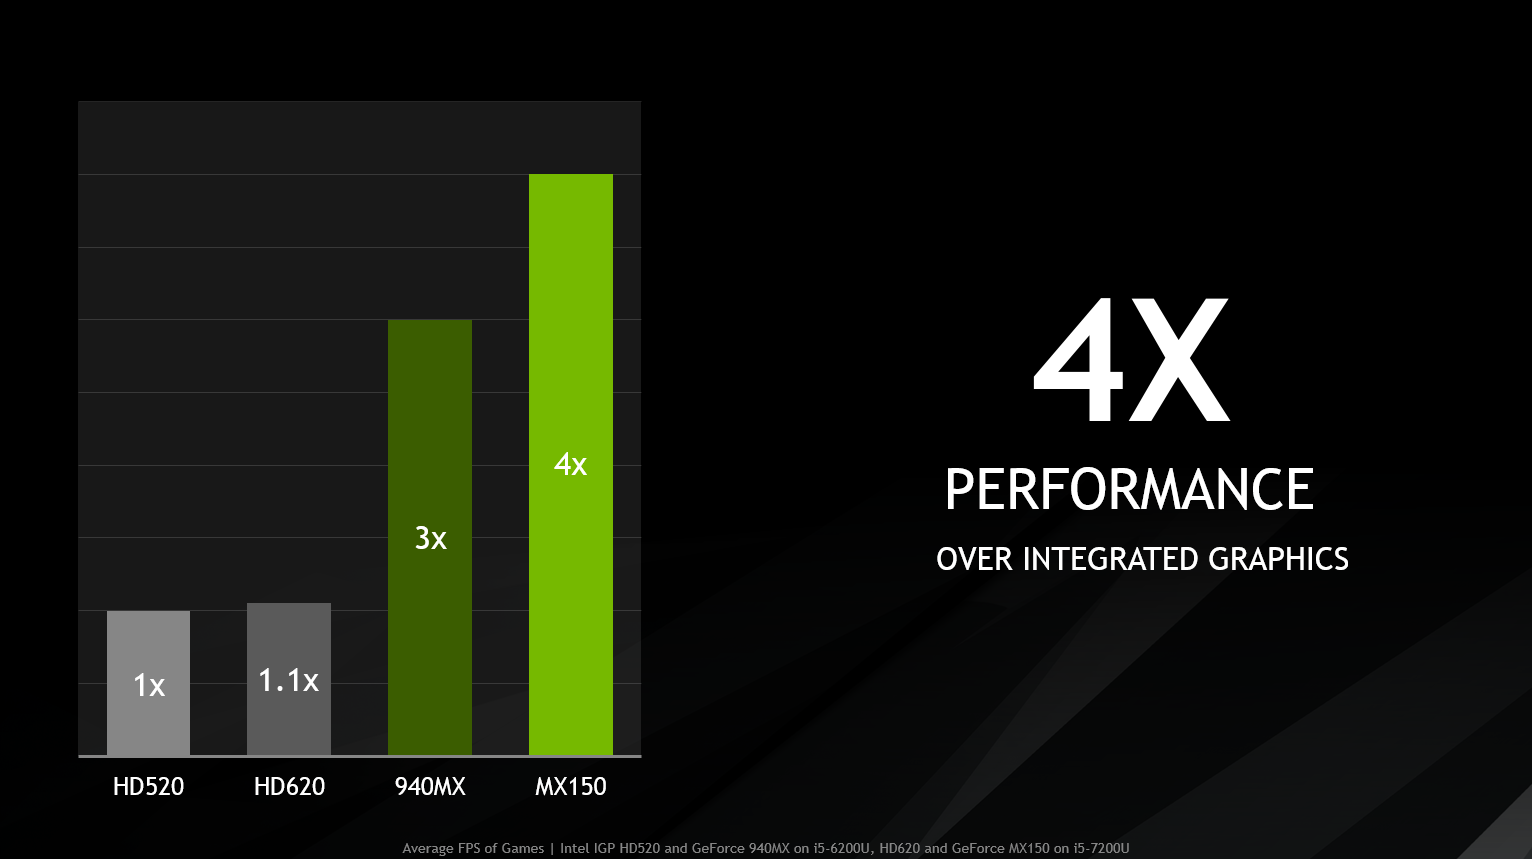 introducing geforce mx150 laptops supercharged for work